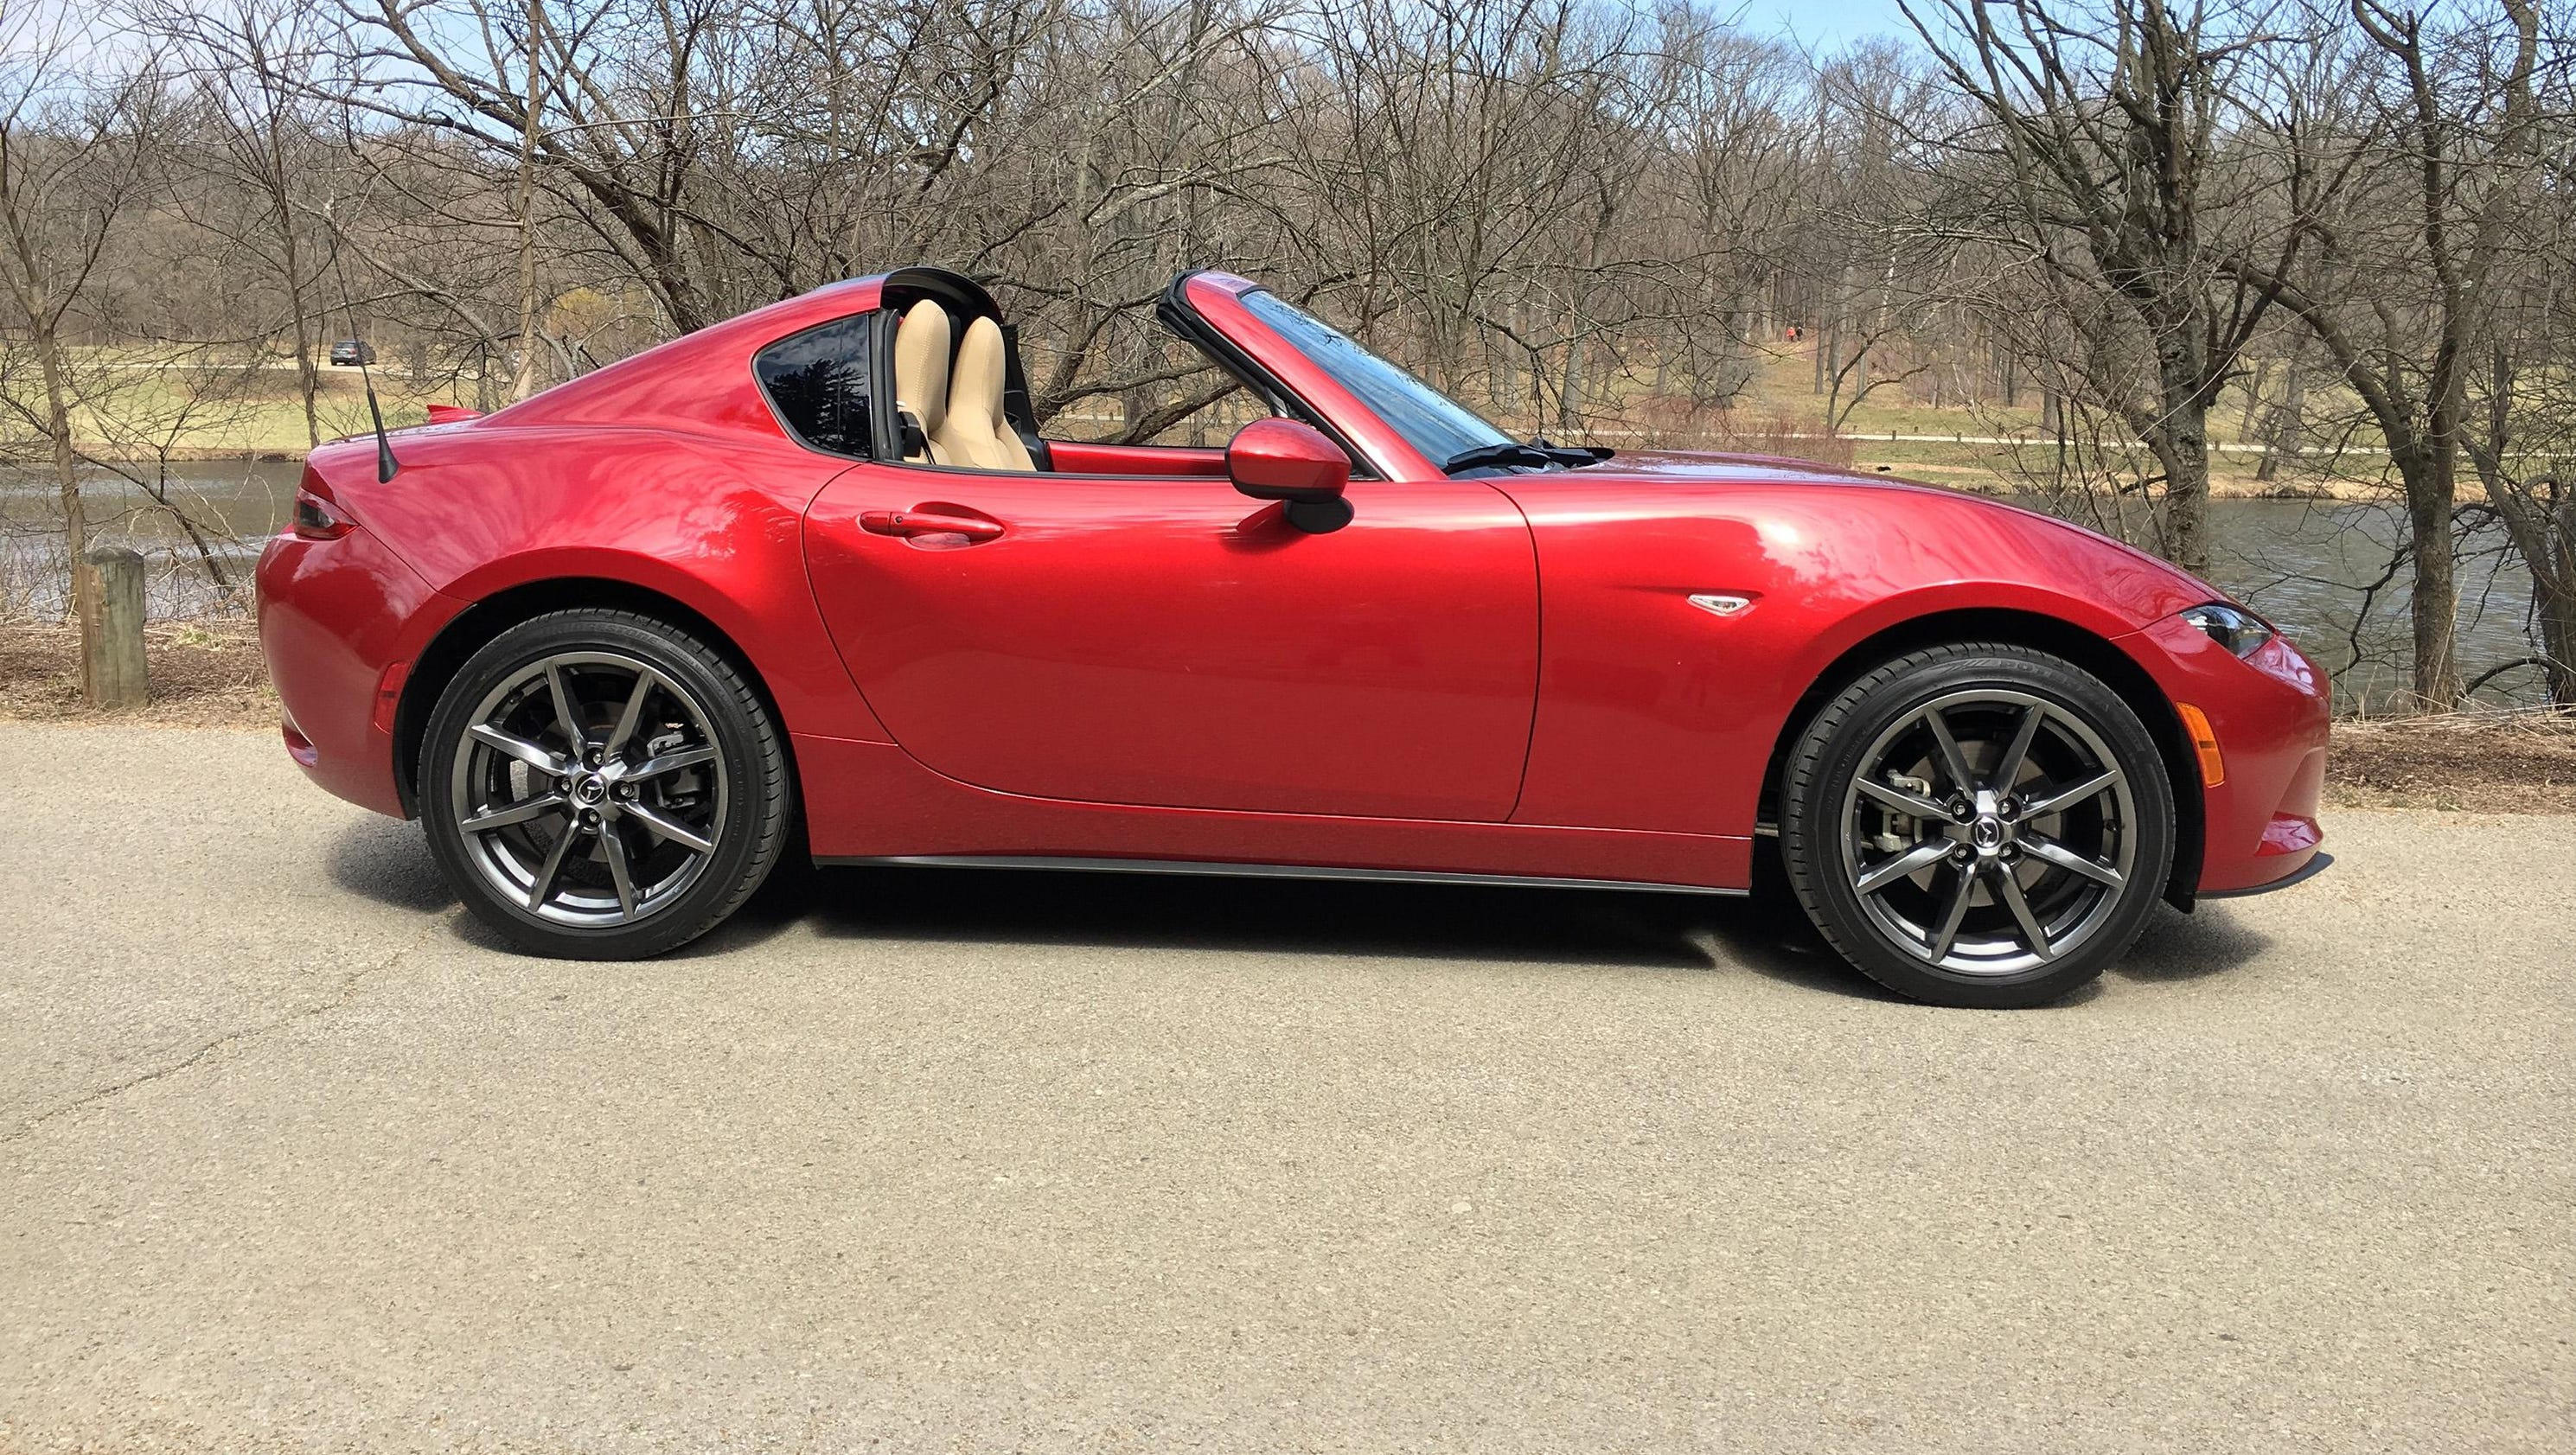 levels mazda more looks new you mx rf trim same grand alert go departure cars get warning lane to have but expensive traffic rear touring also fancy miata hardtop cross the for great driving both